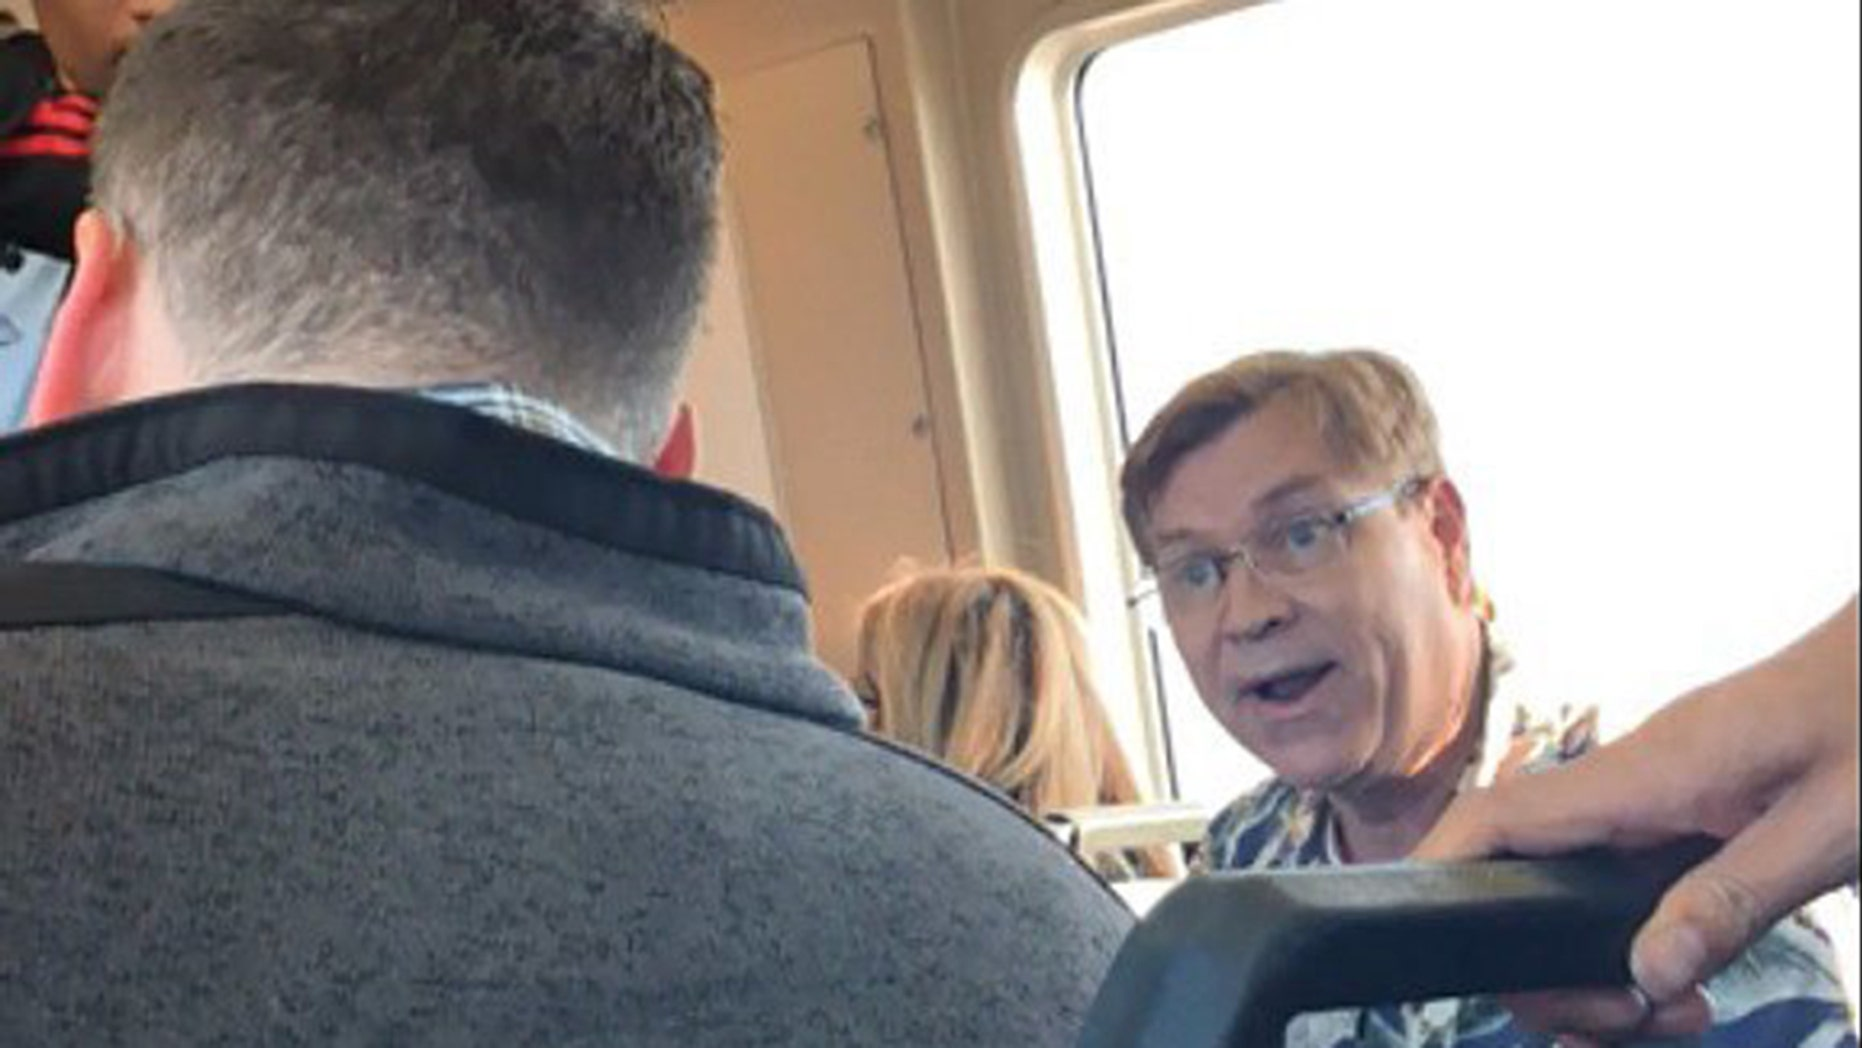 A video of the passenger confronting a fellow rider about his burrito has received mixed reviews.